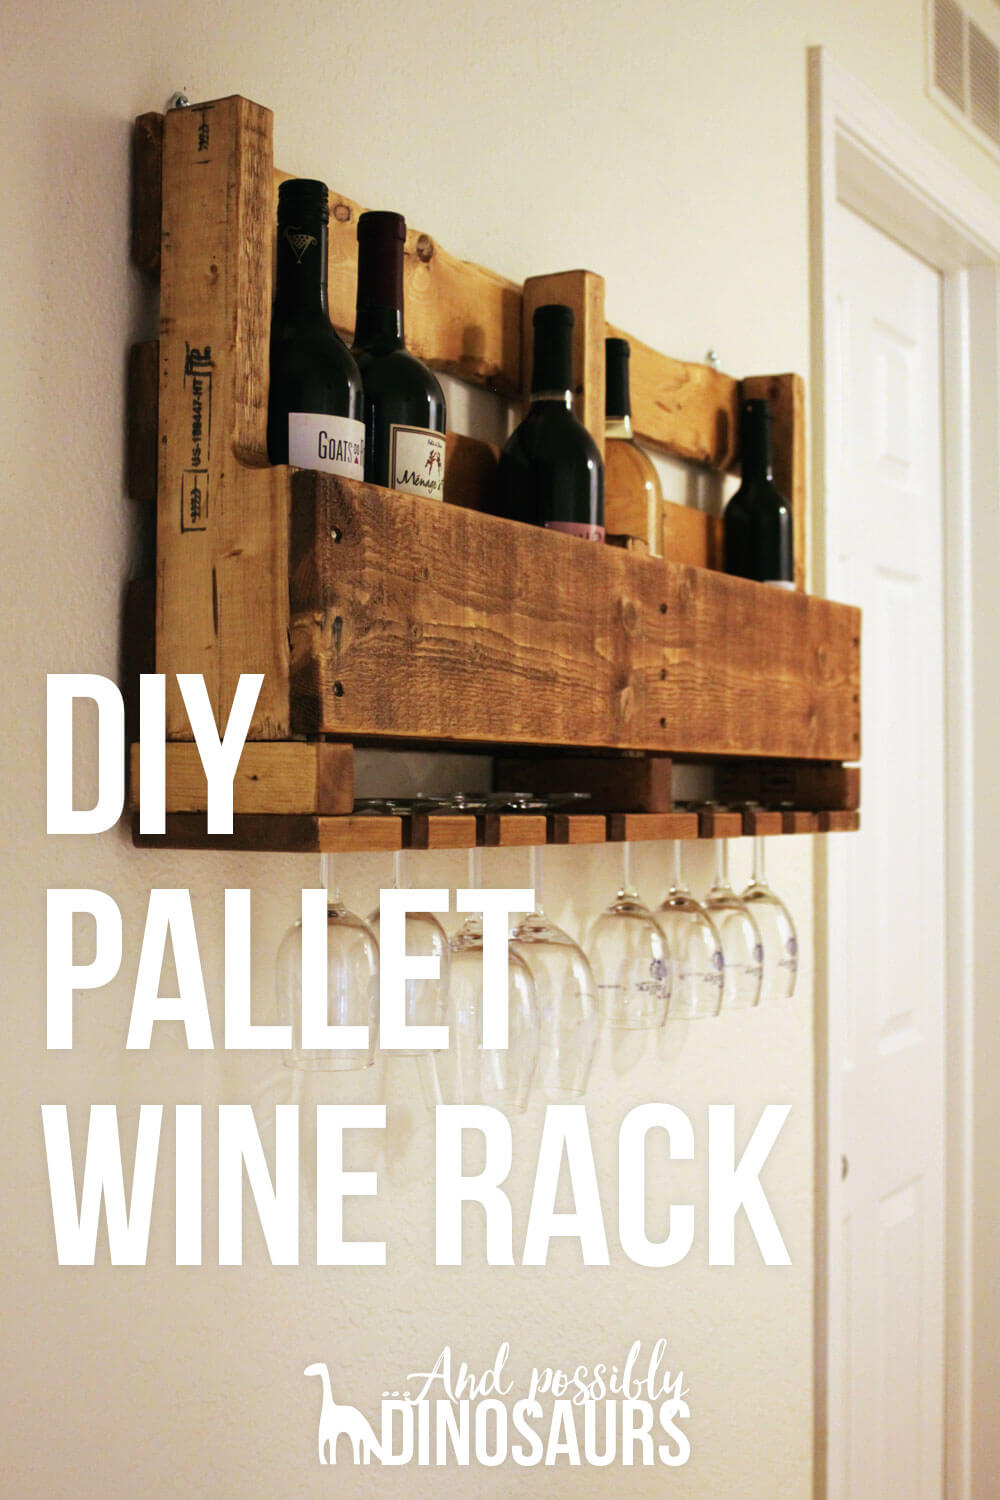 DIY Wine Rack From A